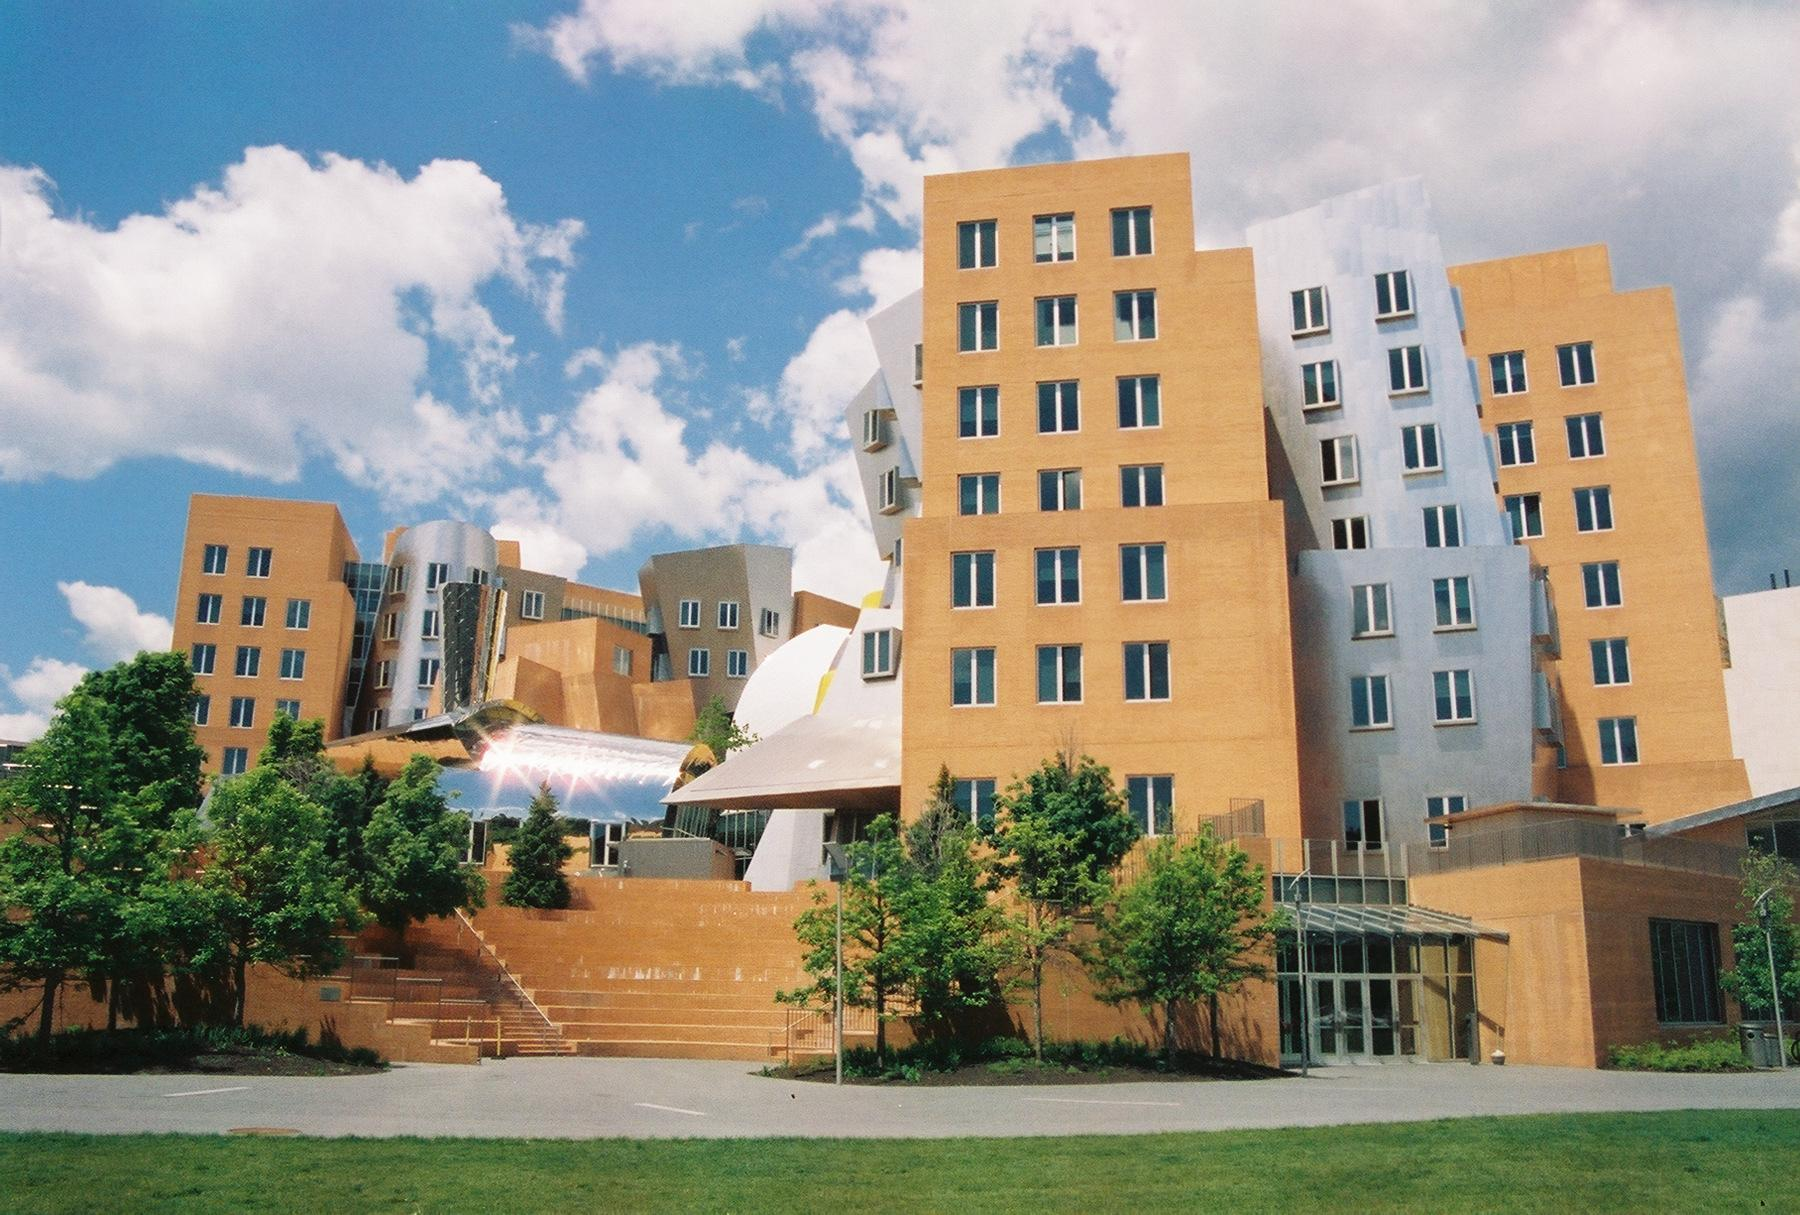 MIT Wallpapers & Backgrounds - Massachusetts Institute of ...